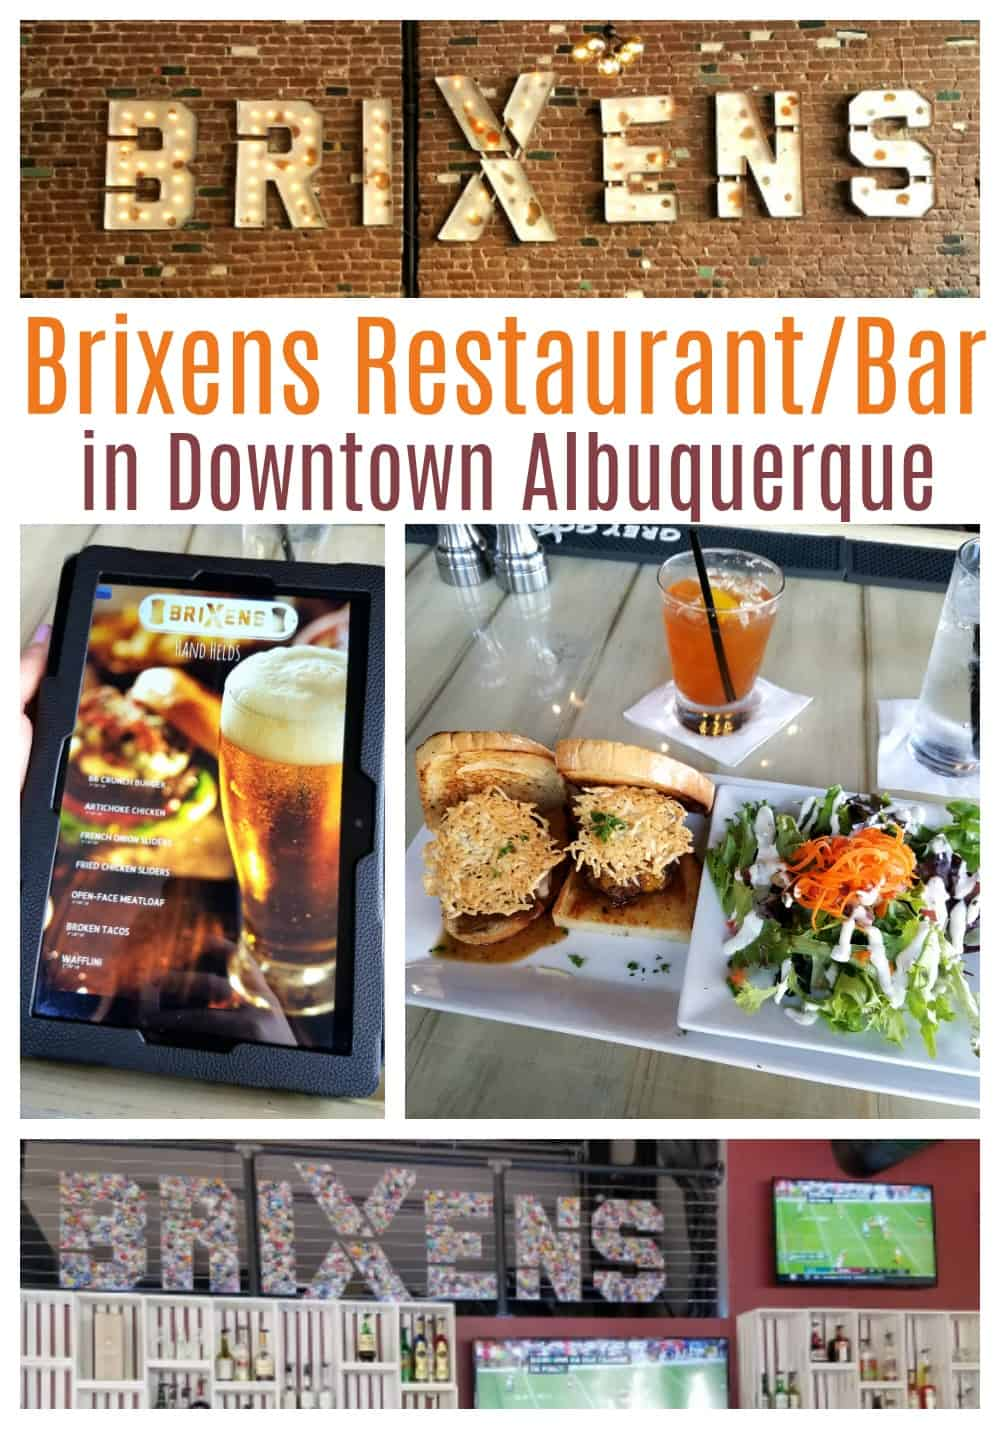 Brixens Restaurant and Bar on Central in Albuquerque, New Mexico